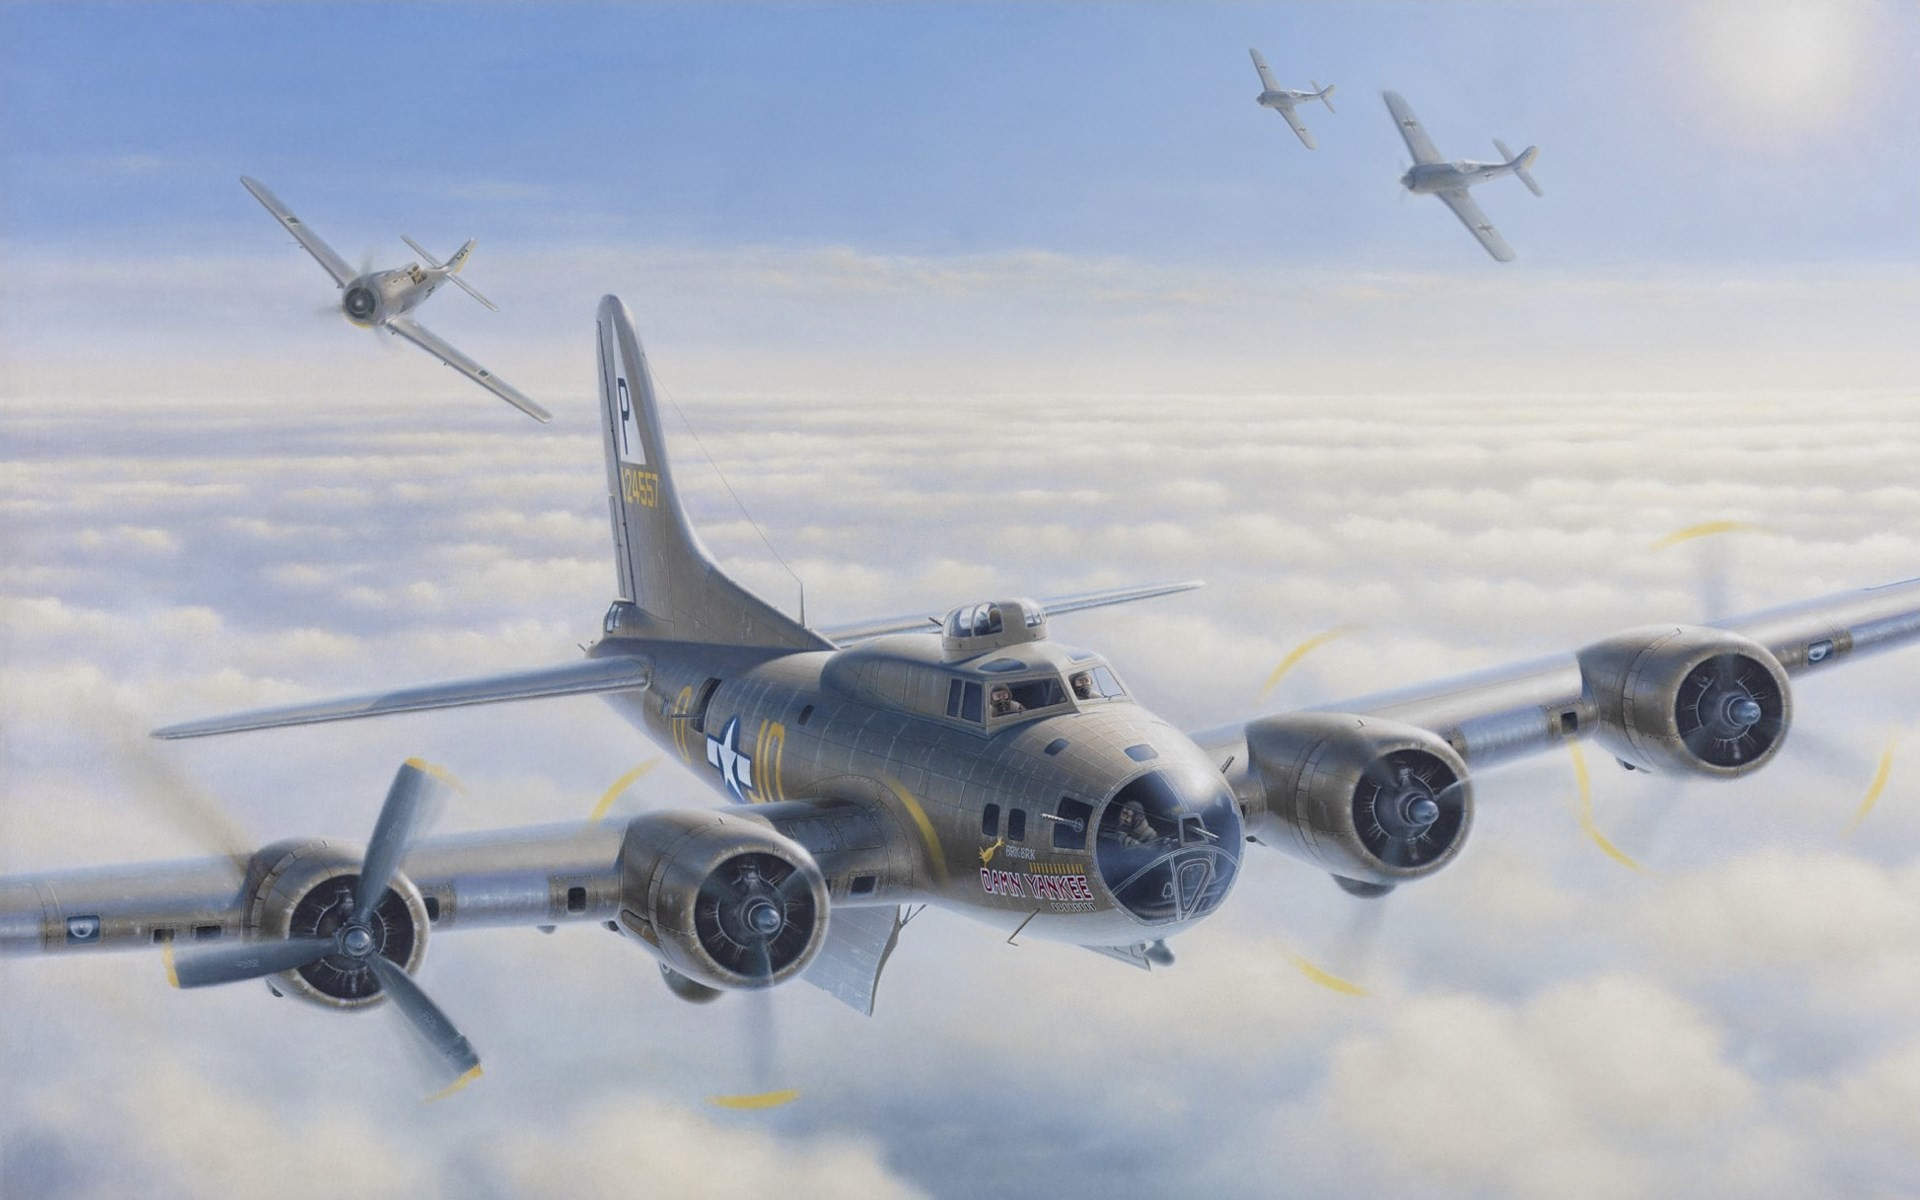 #1874837, Awesome boeing b 17 flying fortress image